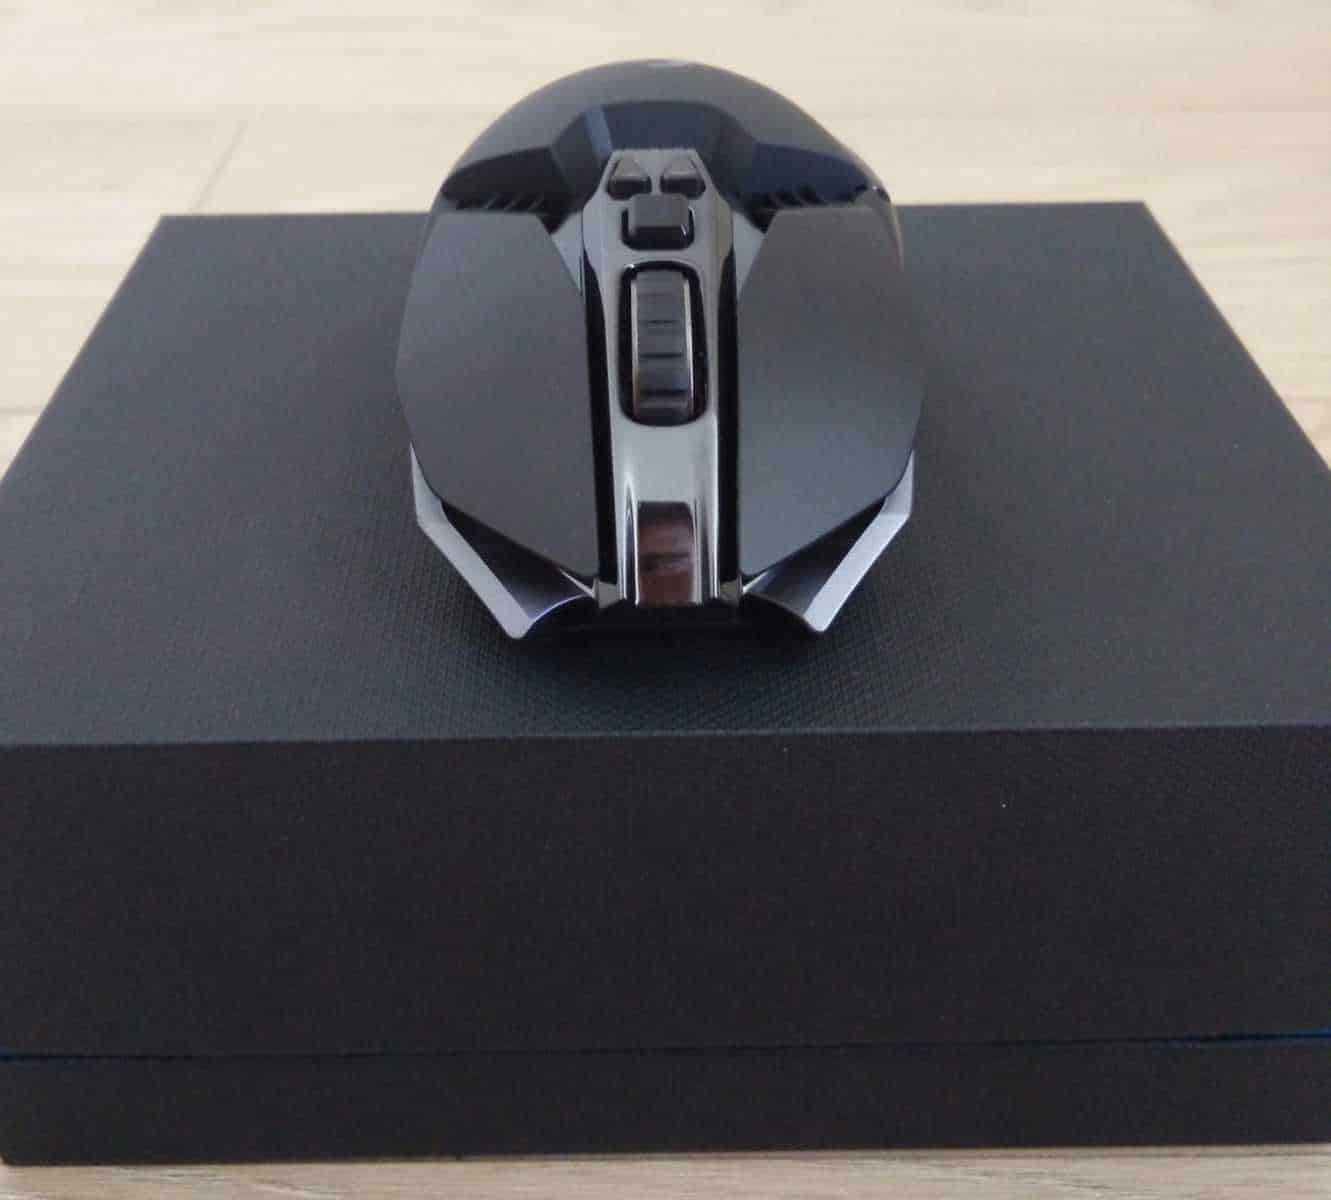 Logitech G900 Chaos Spectrum Gaming Mouse Review The Streaming Blog Photo 14